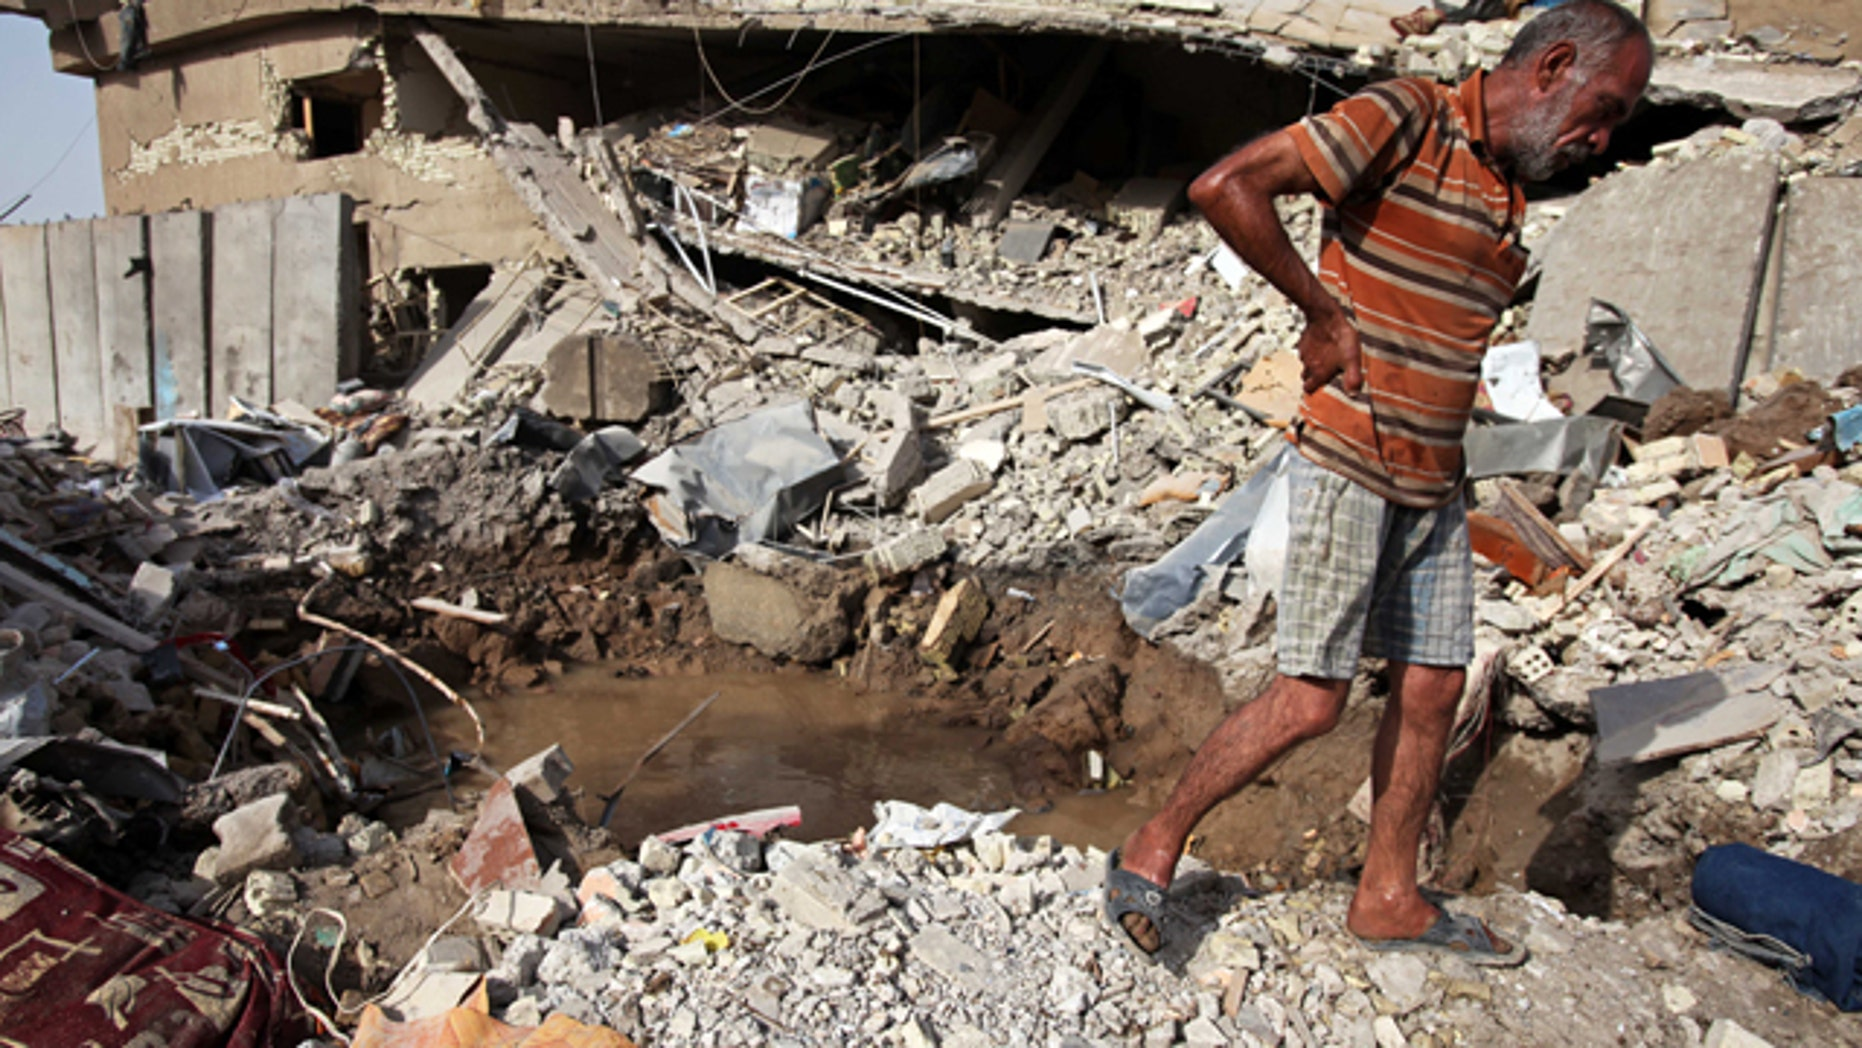 Aug. 26: An Iraqi man surveys the ruins of a collapsed building the day after a bombing in Baghdad, Iraq.